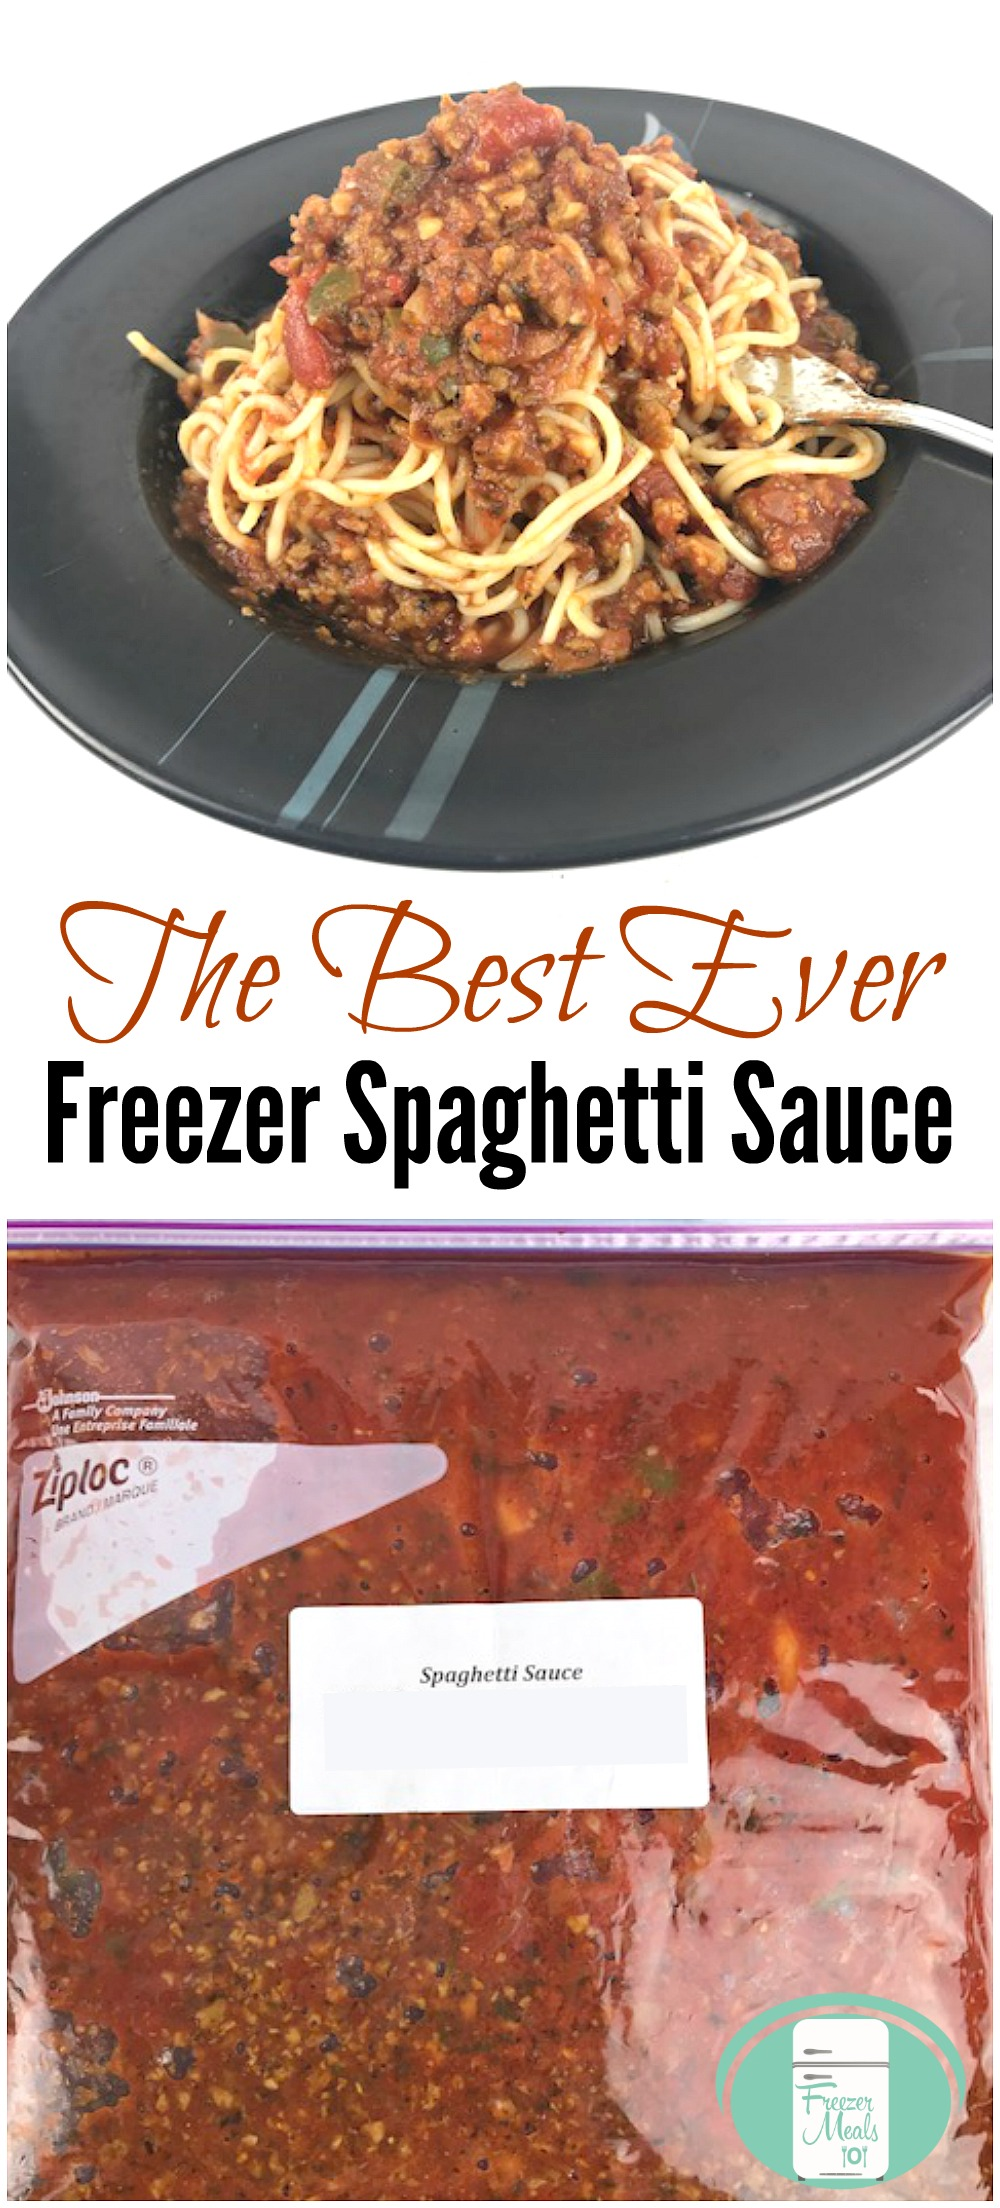 The Best Ever Freezer Spaghetti Sauce Recipe